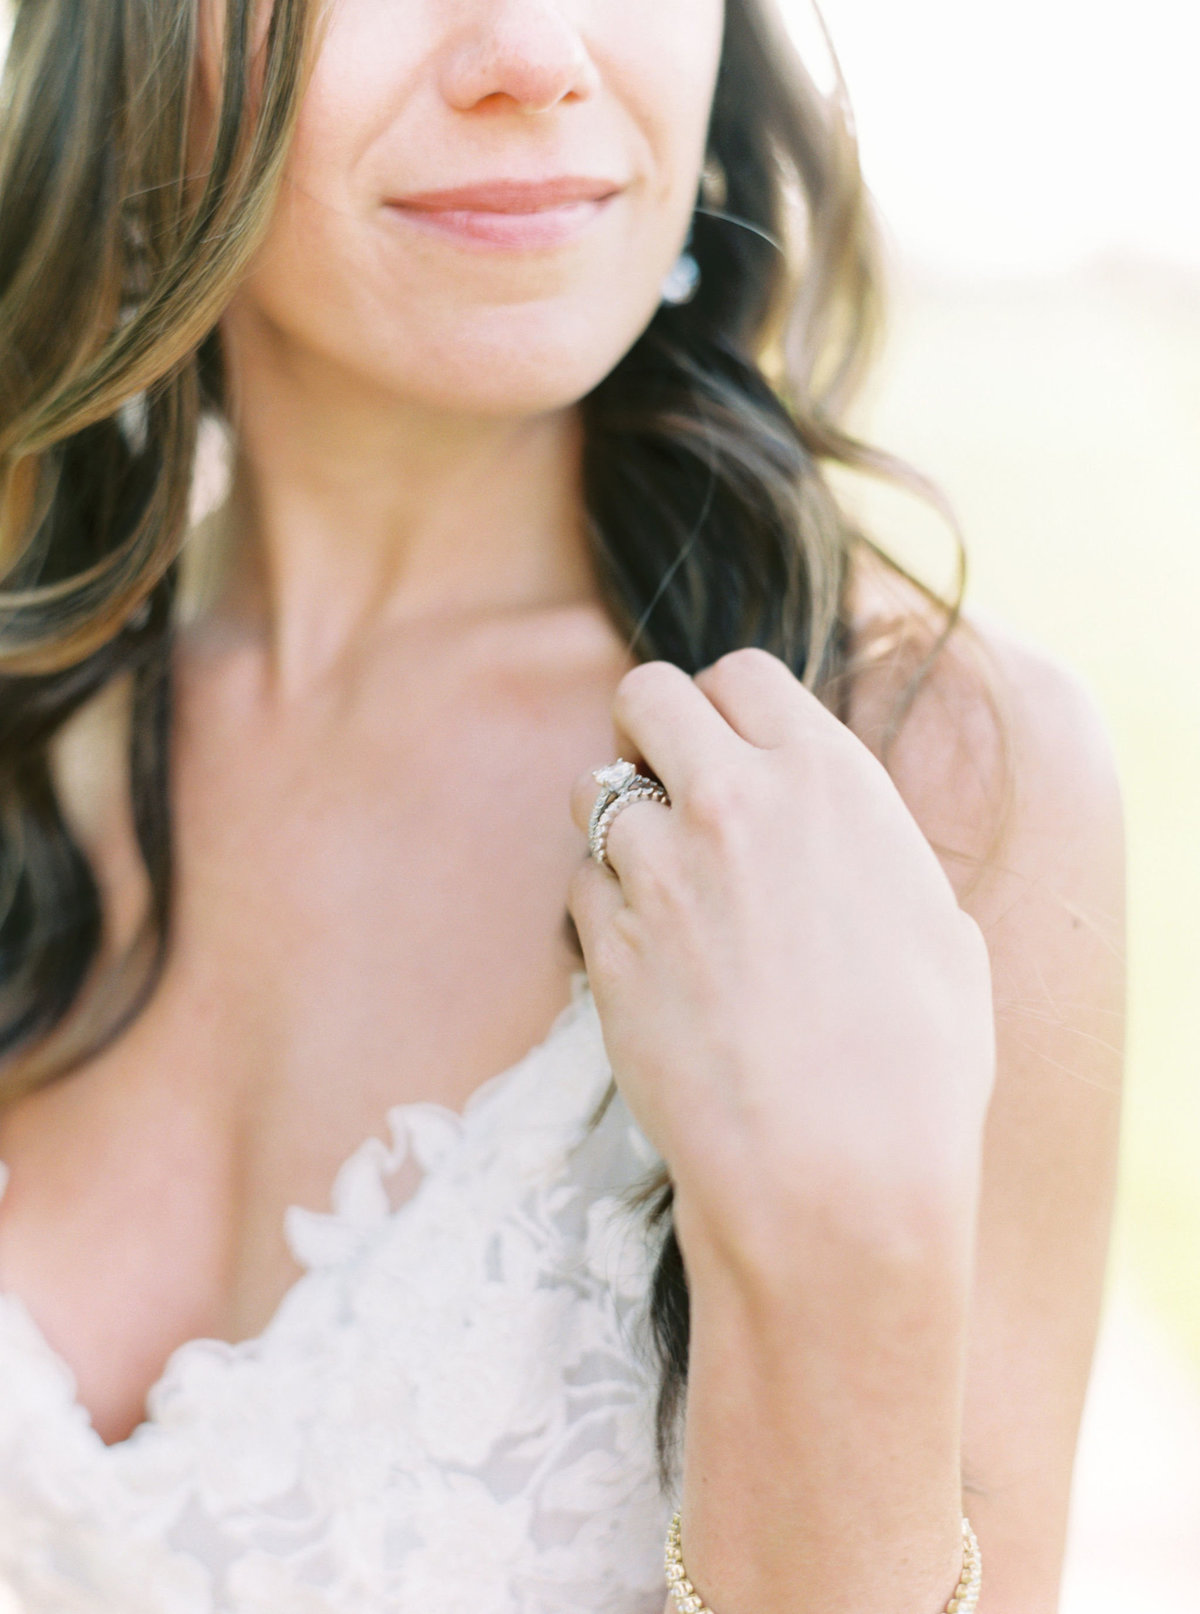 TiffaneyChildsPhotography-ChicagoWeddingPhotographer-Chloe+Jon-HinsdaleCountryClubWedding-BridalPortraits-115